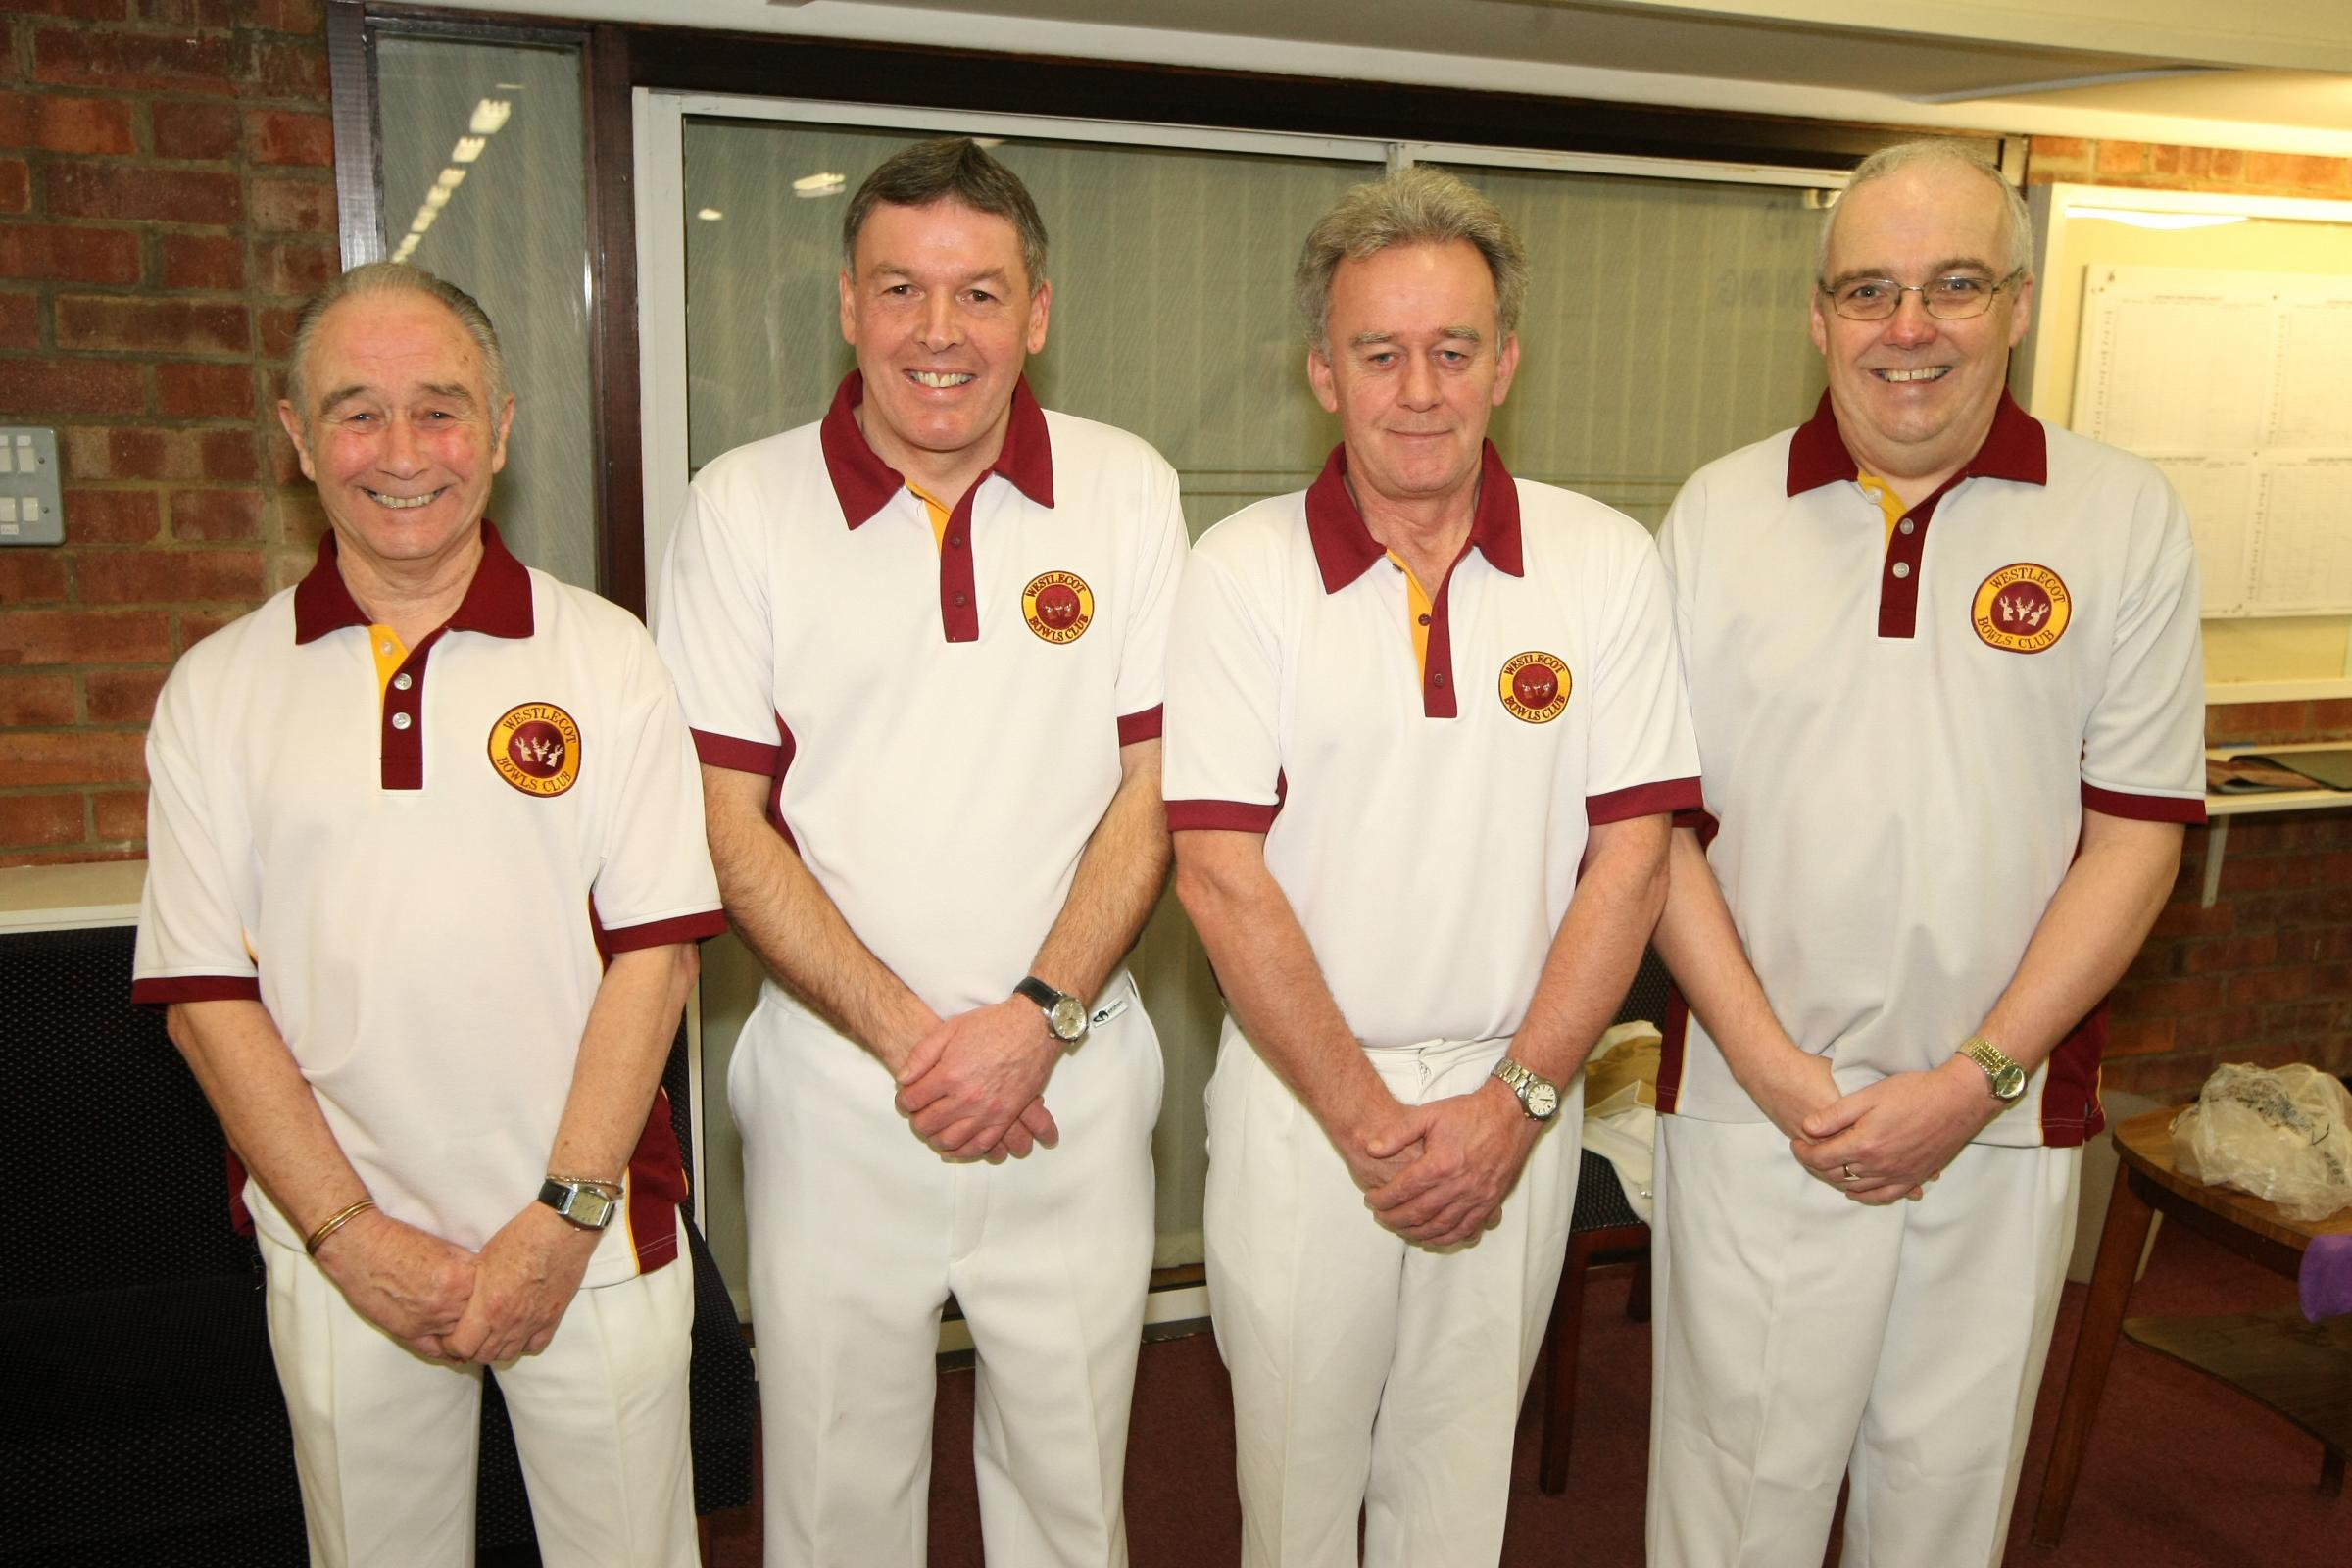 Westlecot bowlers (l-r) Dave Matthews, Kevin Lee, Steve